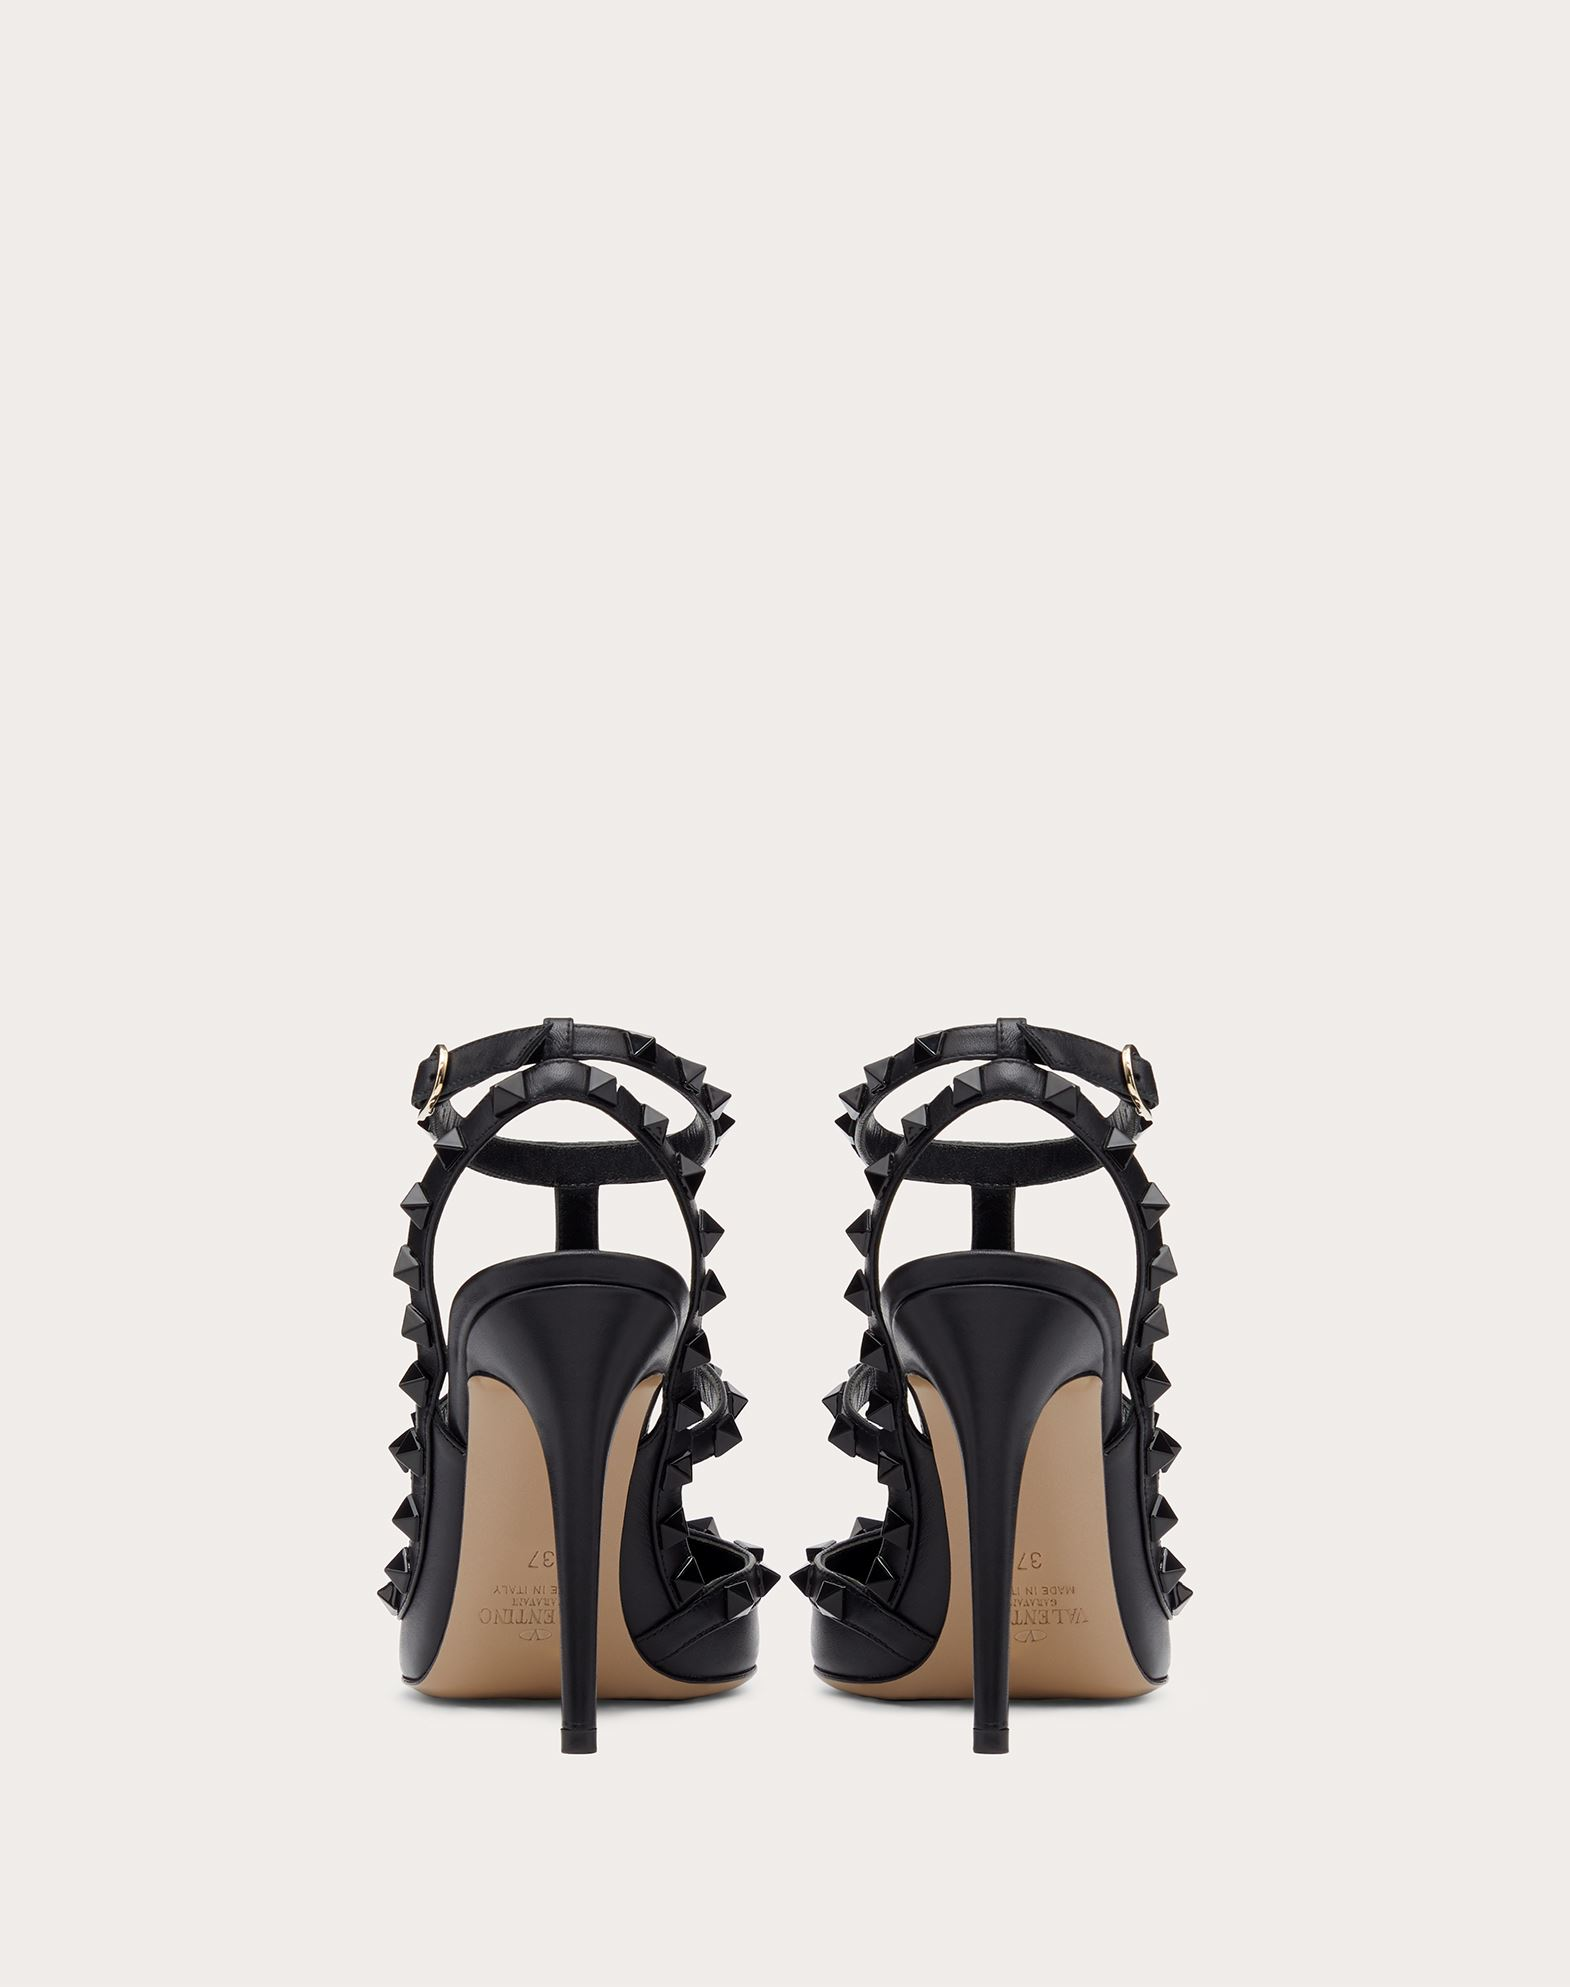 VALENTINO GARAVANI Rockstud Court HIGH HEEL PUMPS D d